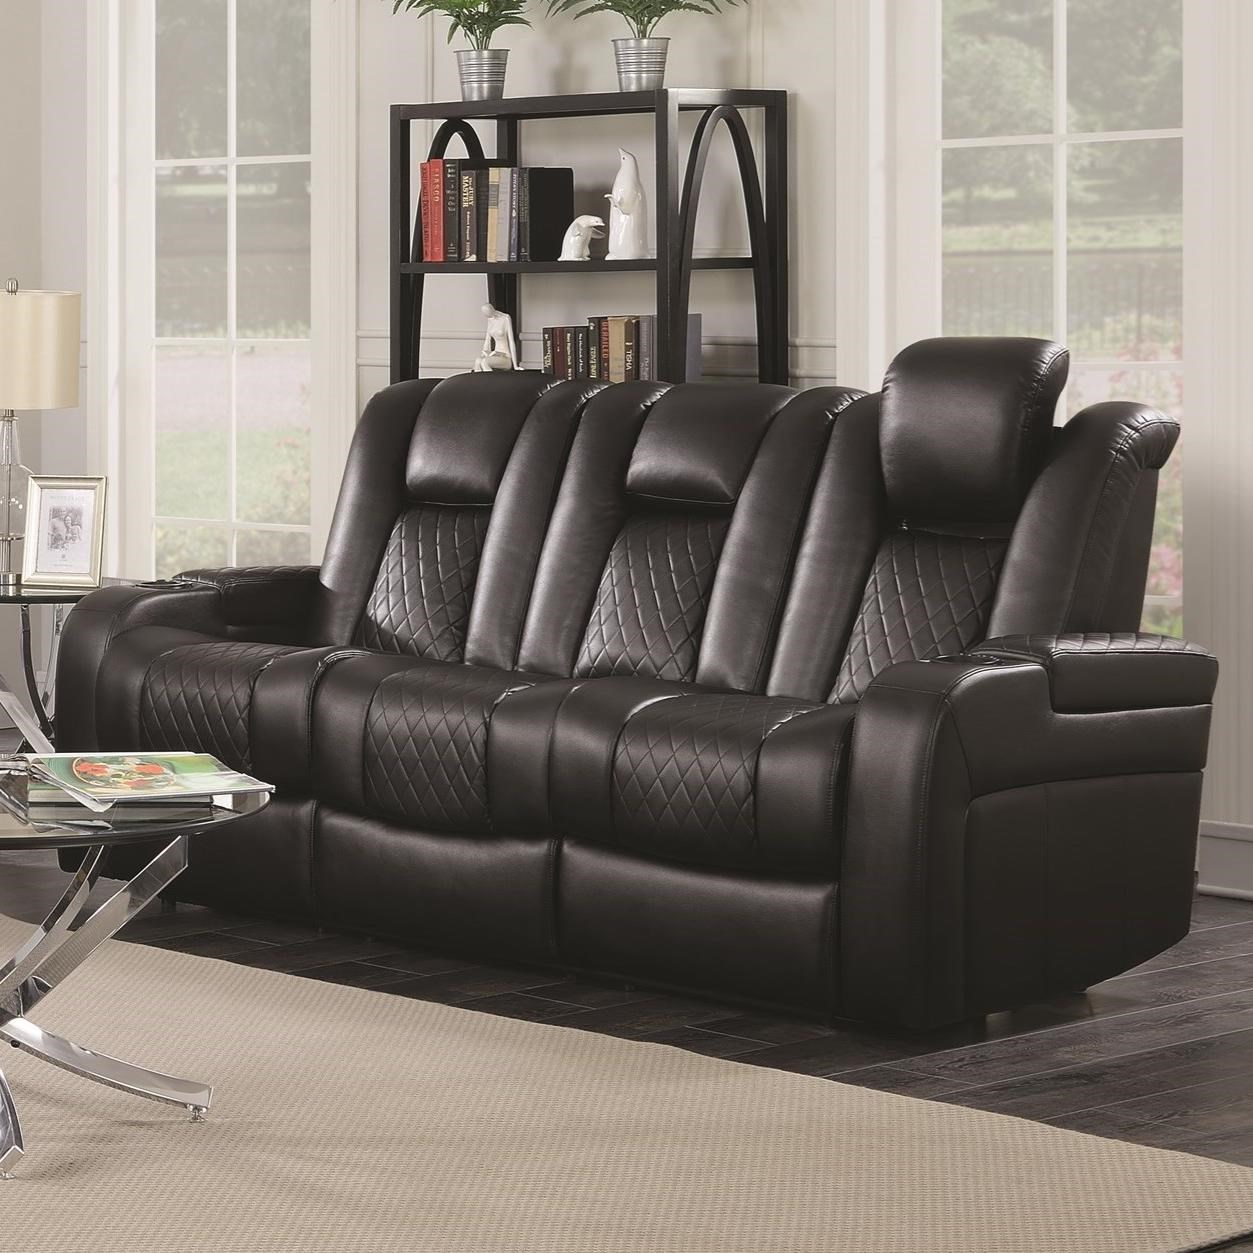 Casual power reclining sofa with cup holders storage for Casual couch